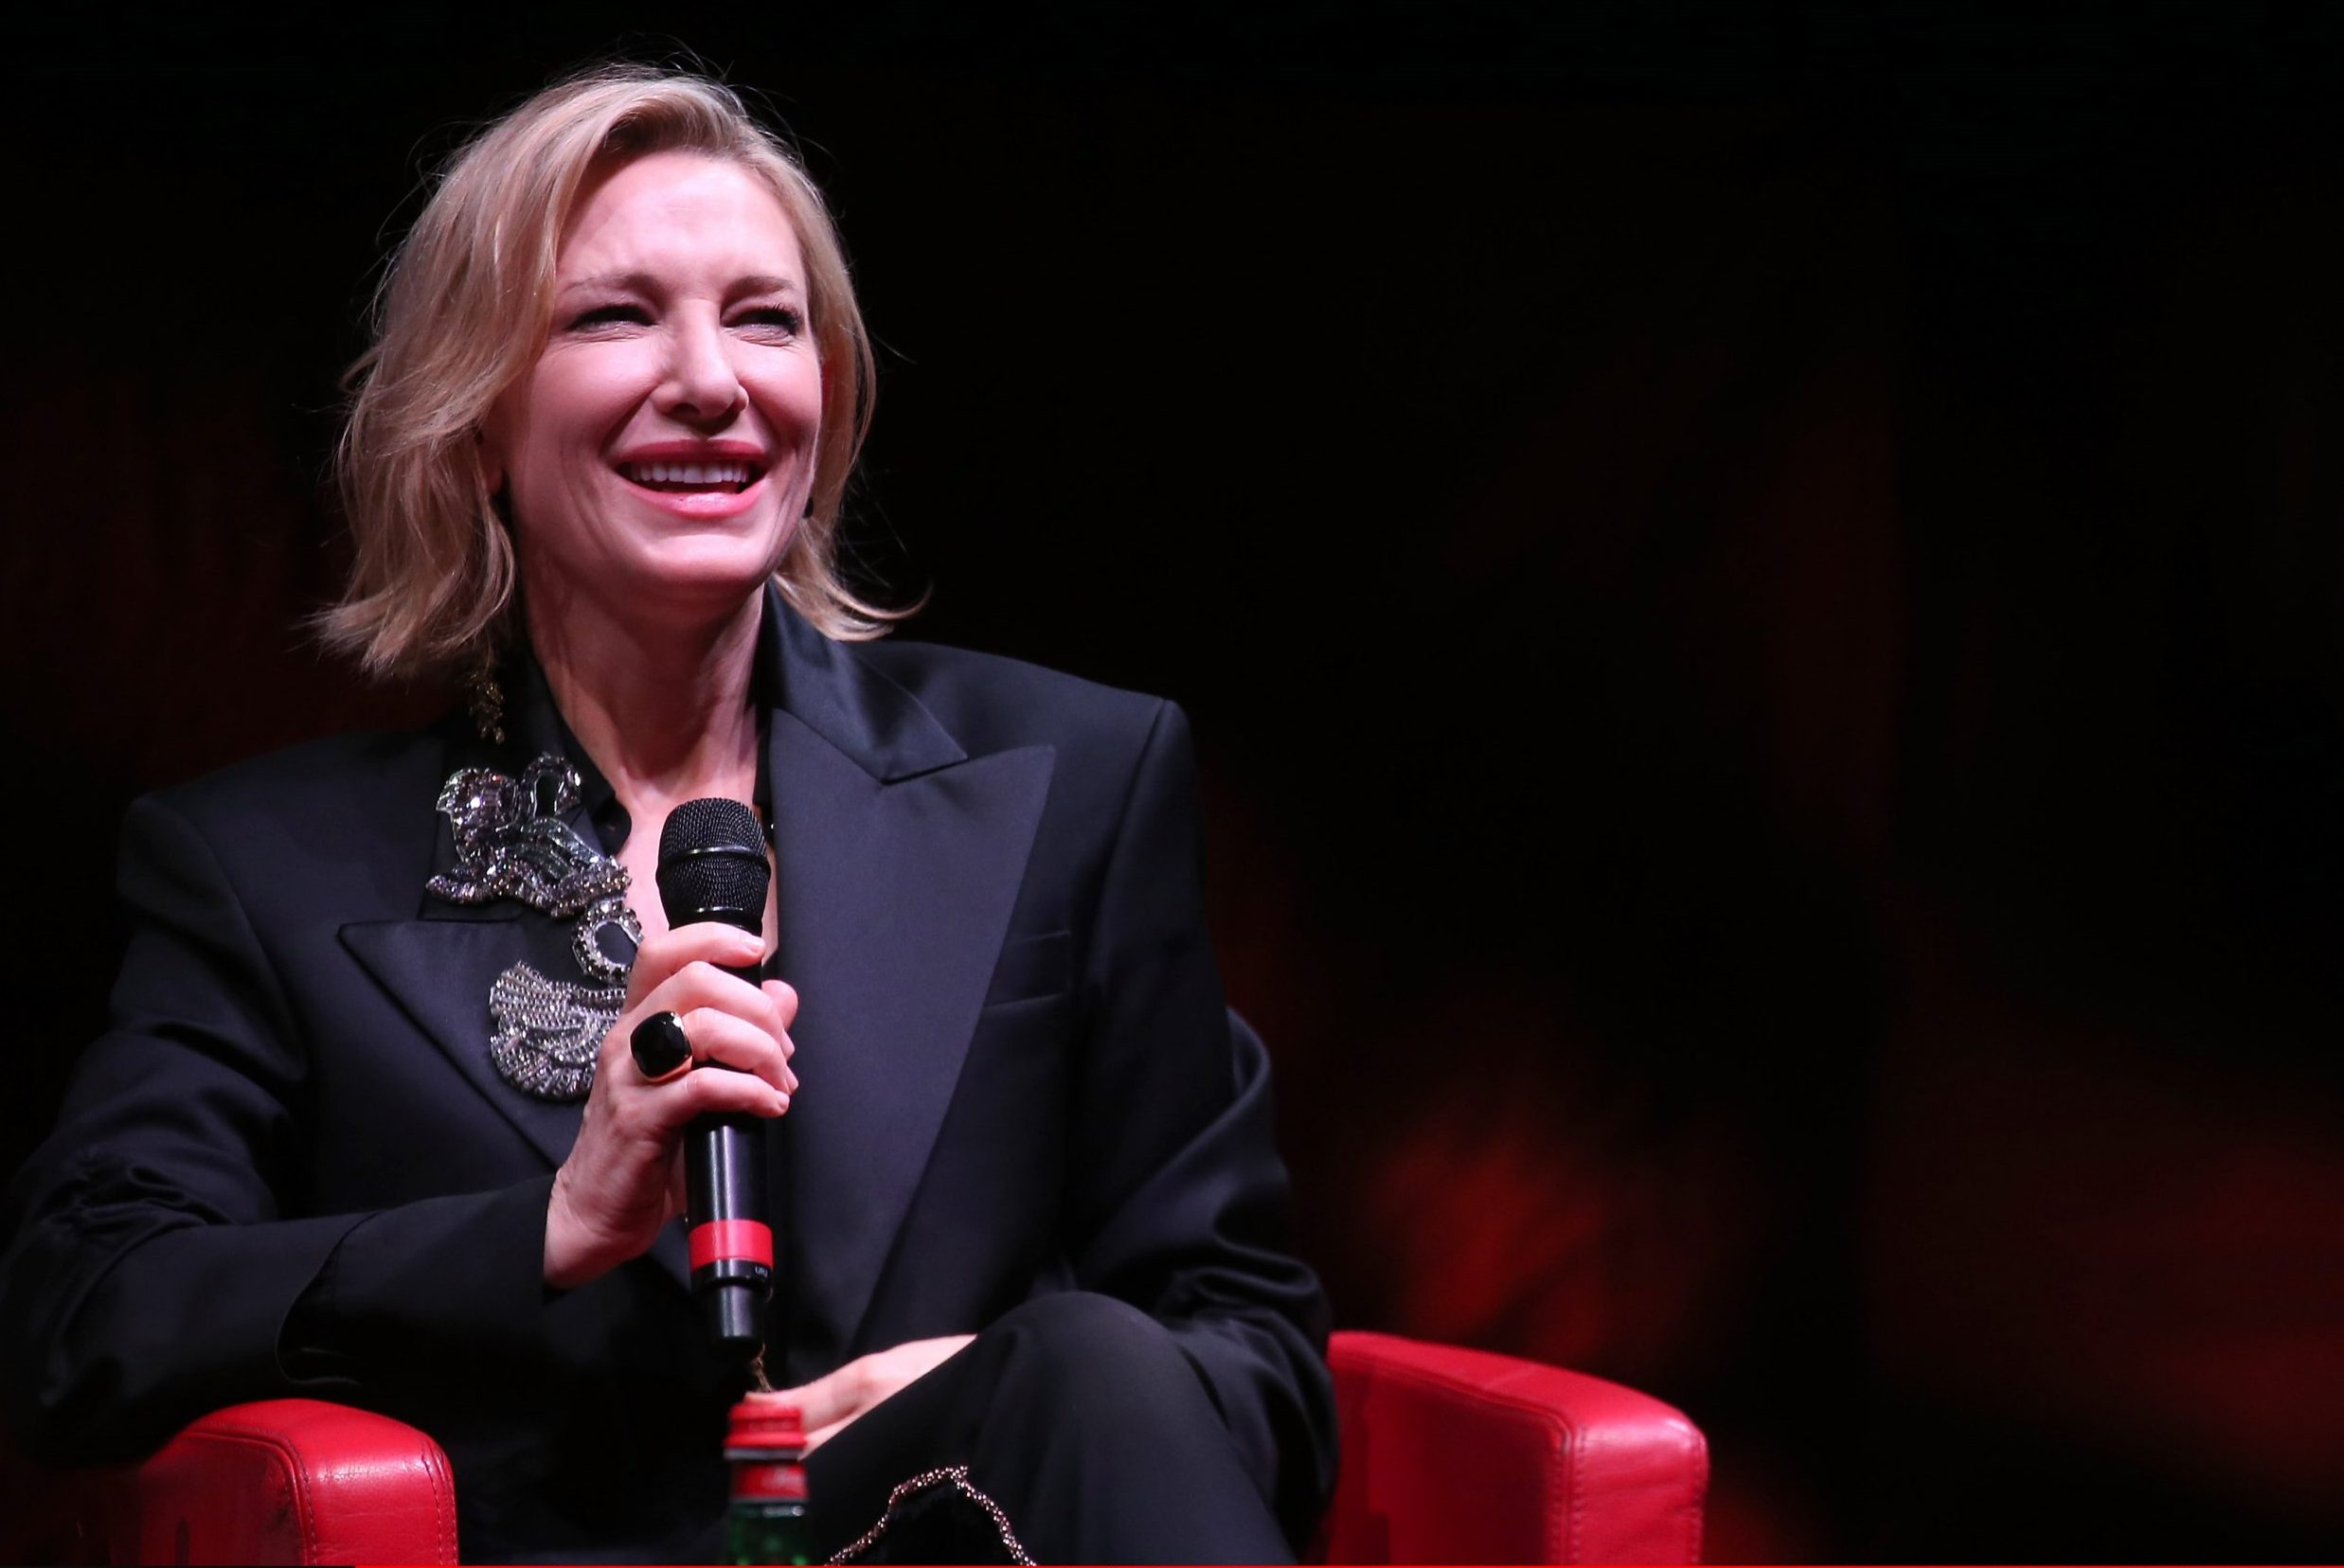 ROME, ITALY - OCTOBER 19: Cate Blanchett meets the audience during the 13th Rome Film Fest at Auditorium Parco Della Musica on October 19, 2018 in Rome, Italy. (Photo by Franco Origlia/Getty Images)